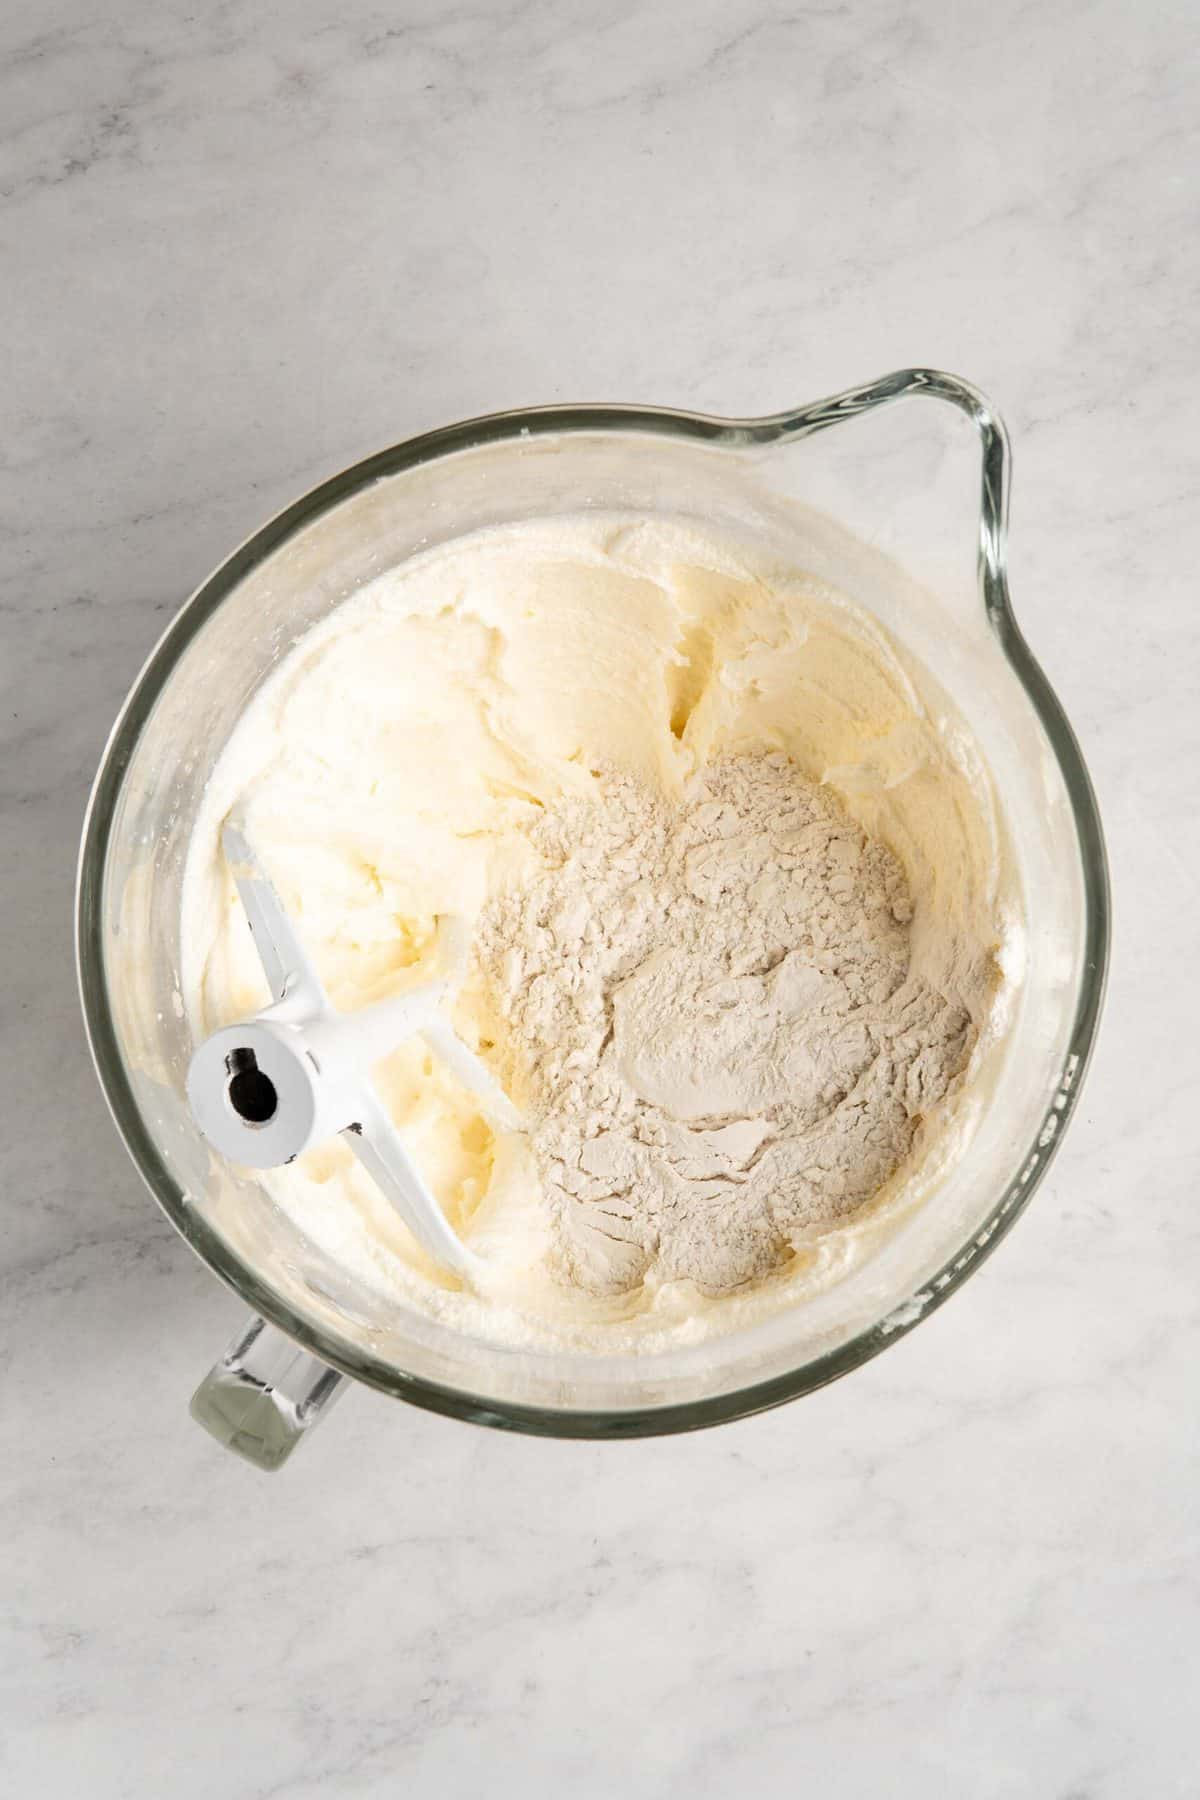 Creamed butter and sugar with flour.